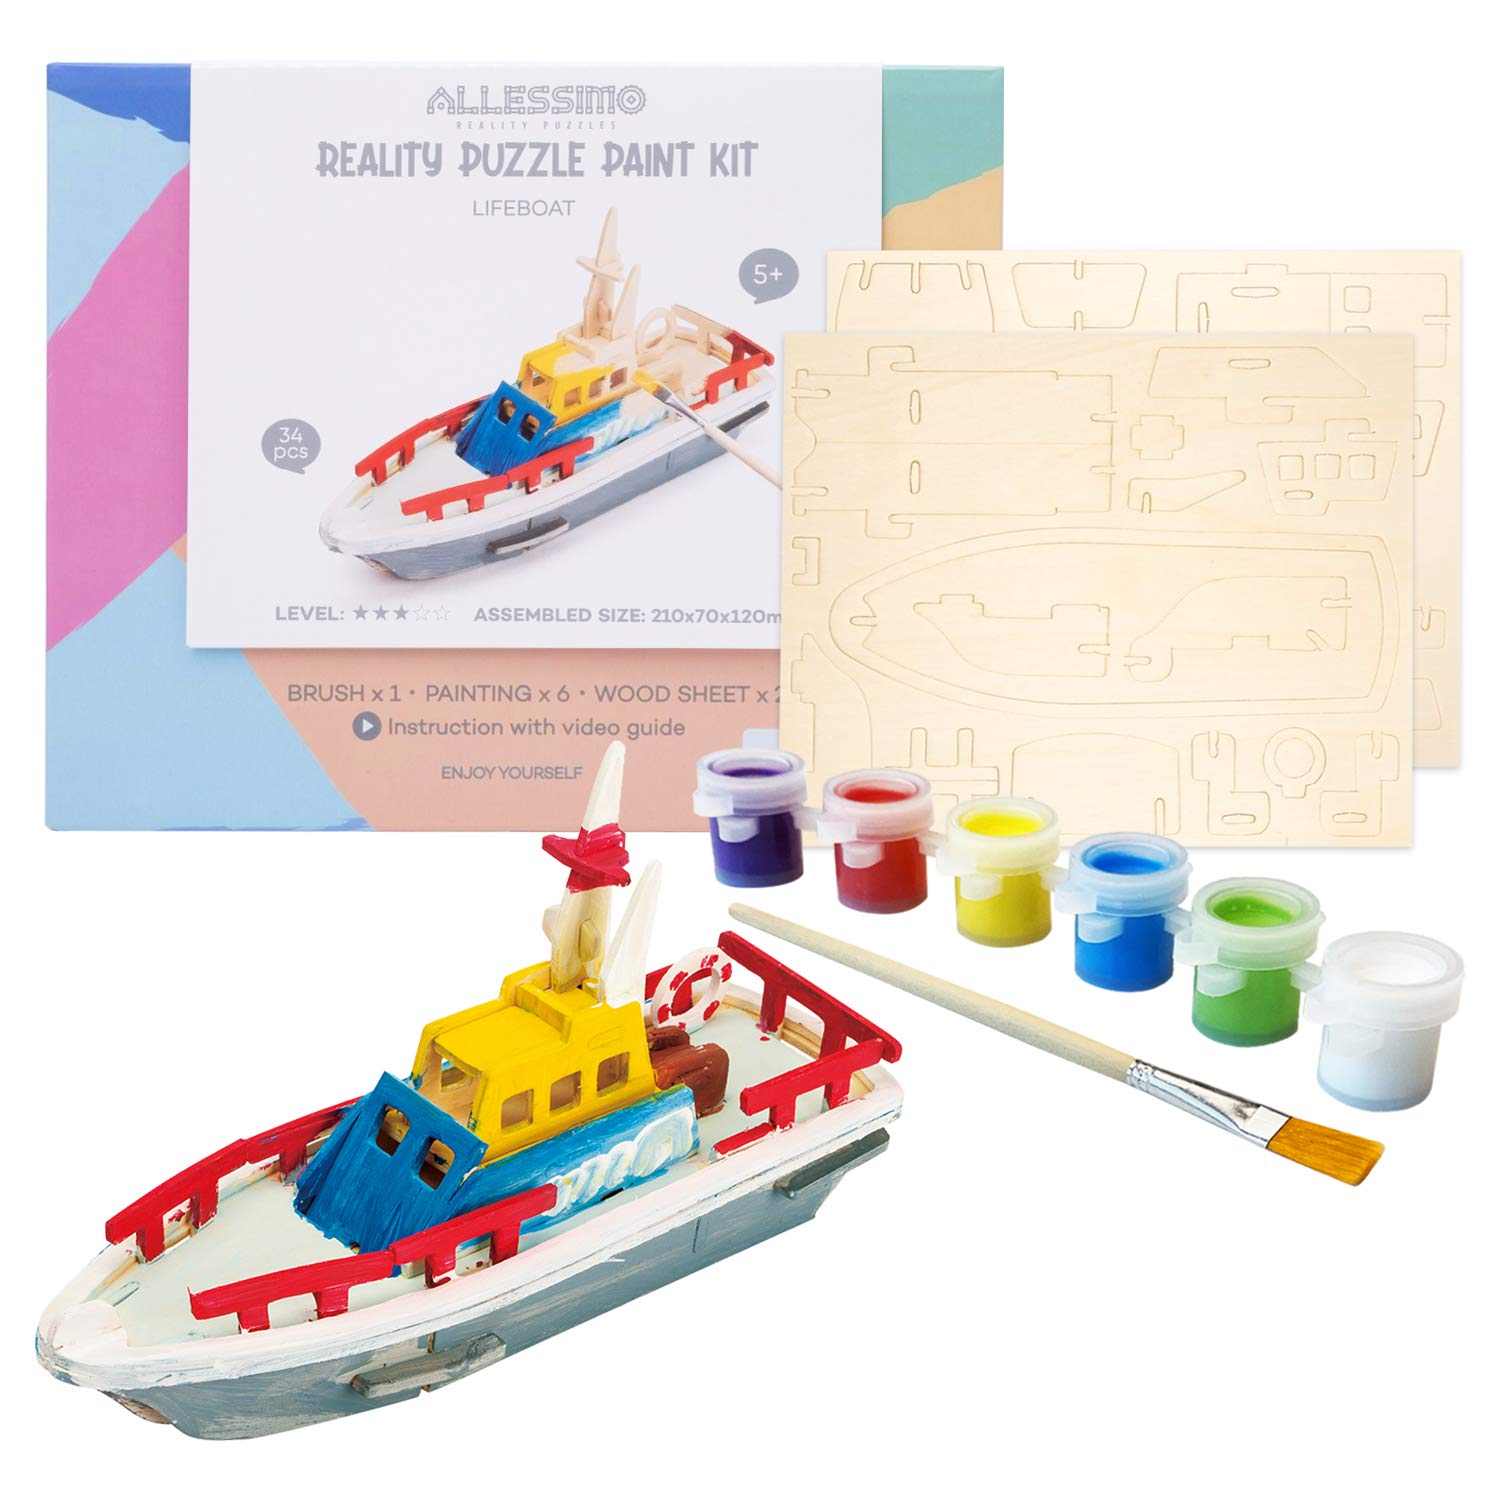 Allessimo Reality Puzzles 3D Wooden Model Paint Kit (Lifeboat - 34 pc Puzzle) Toys for Kids & Adults DIY Puzzle Build 3D Puzzles Paint Kits